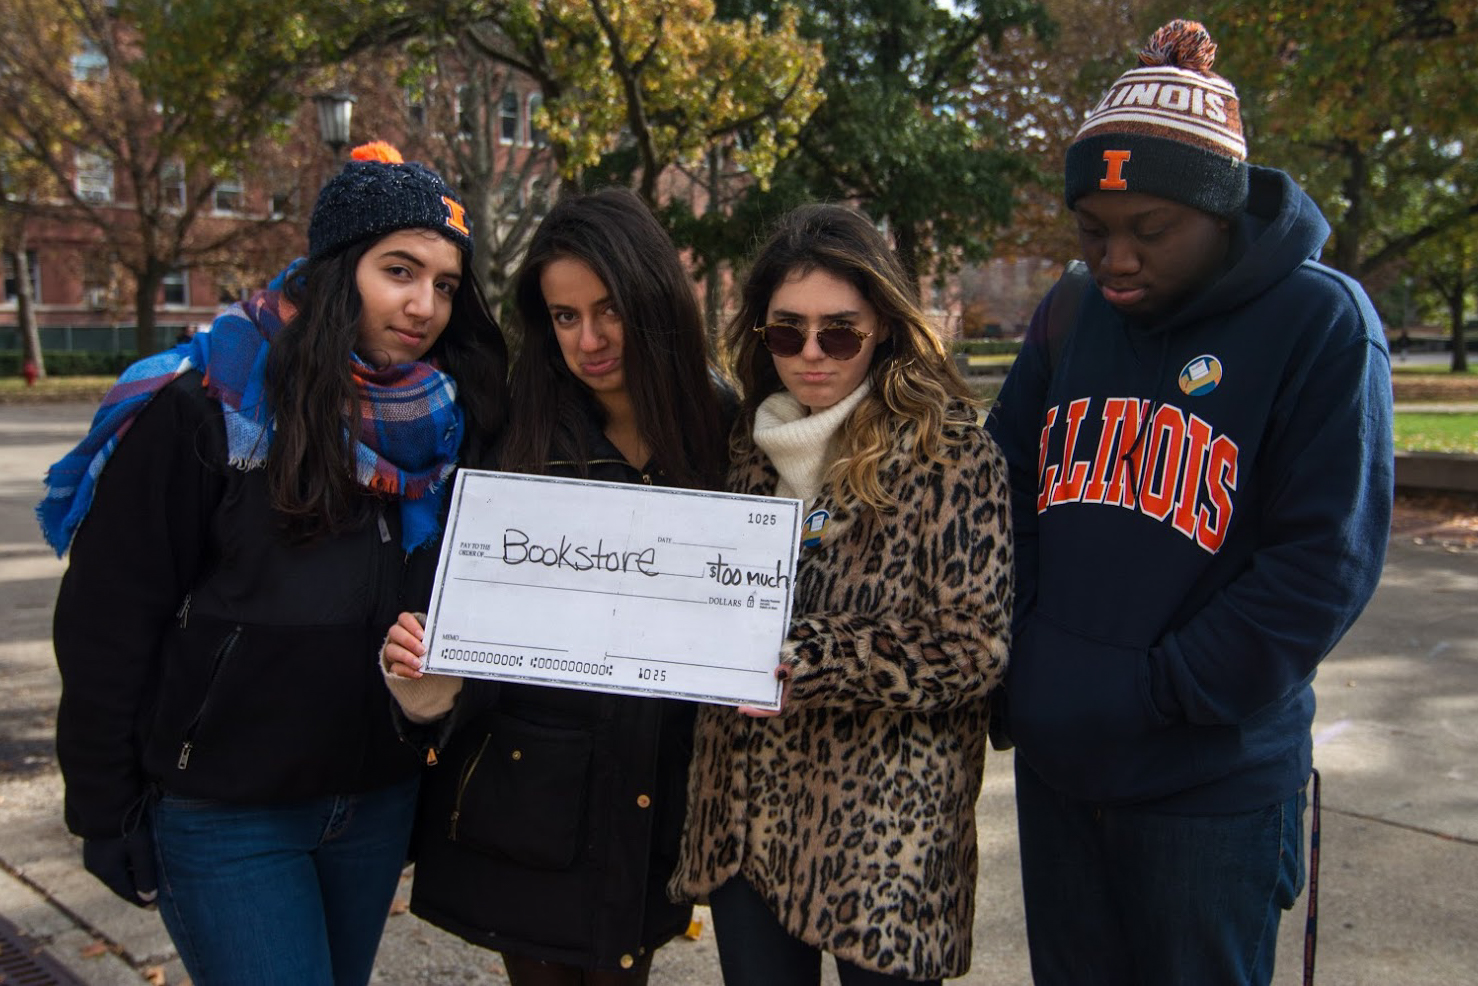 Students from the Illinois Student Government hold a booth to support open-sourced textbooks for University of Illinois students in front of the Illini Union on the Main Quadrangle.